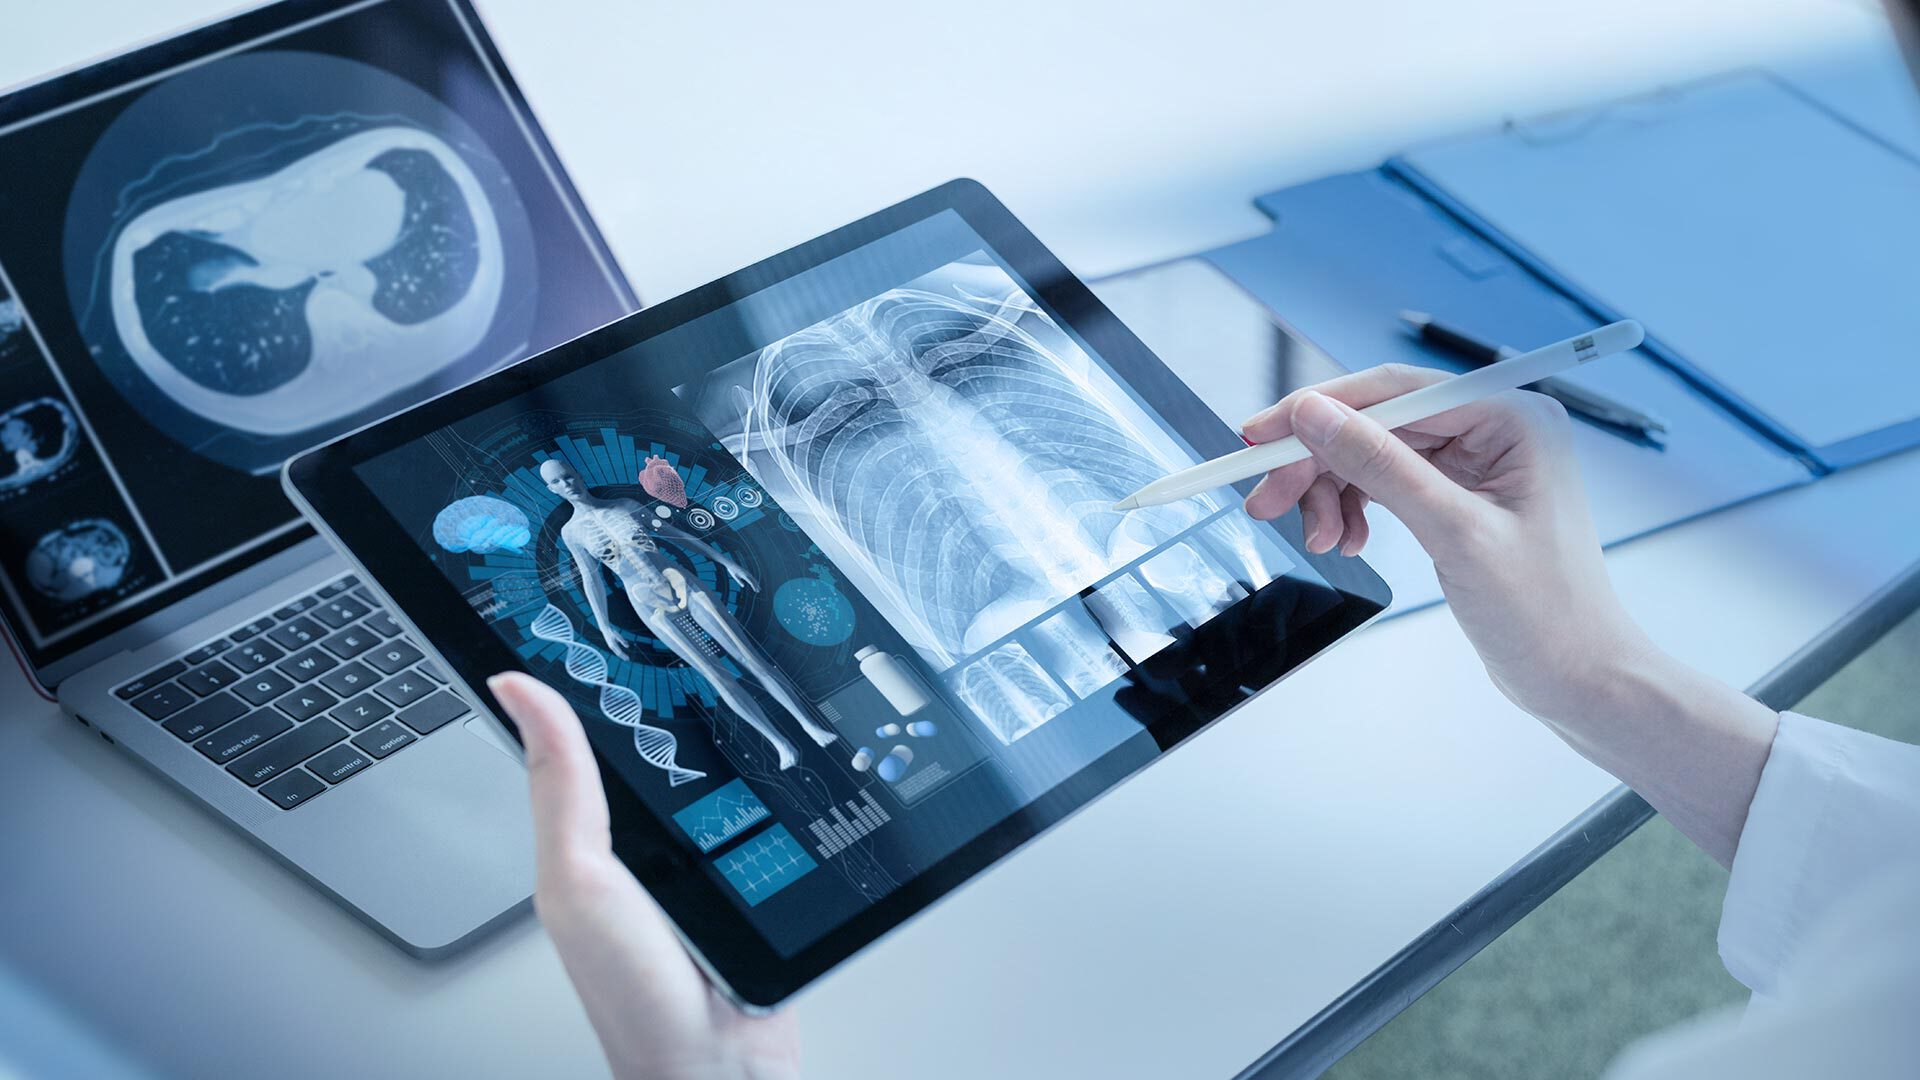 Medical images on a tablet PC